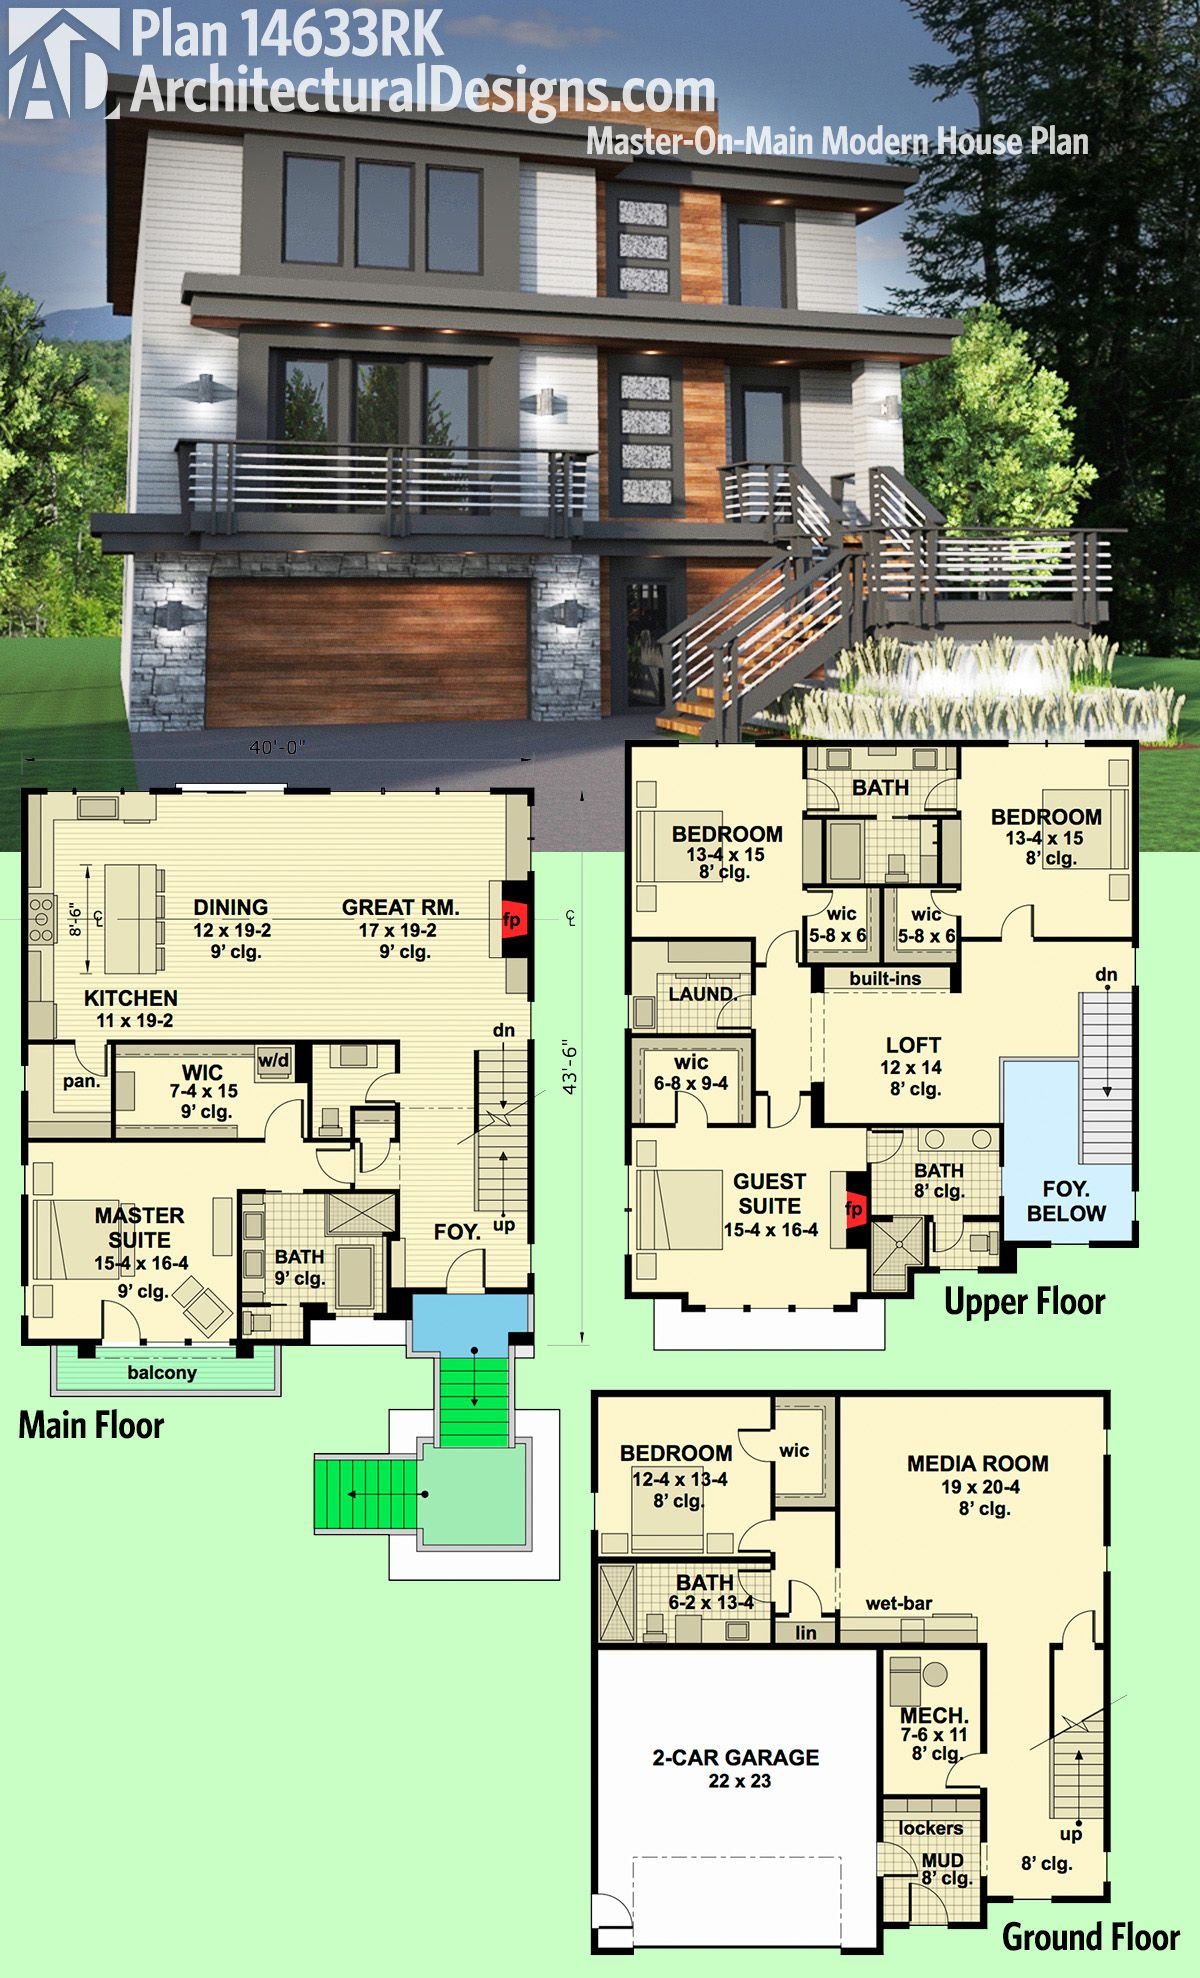 Plan 14633rk master on main modern house plan modern for Architectural design home plans